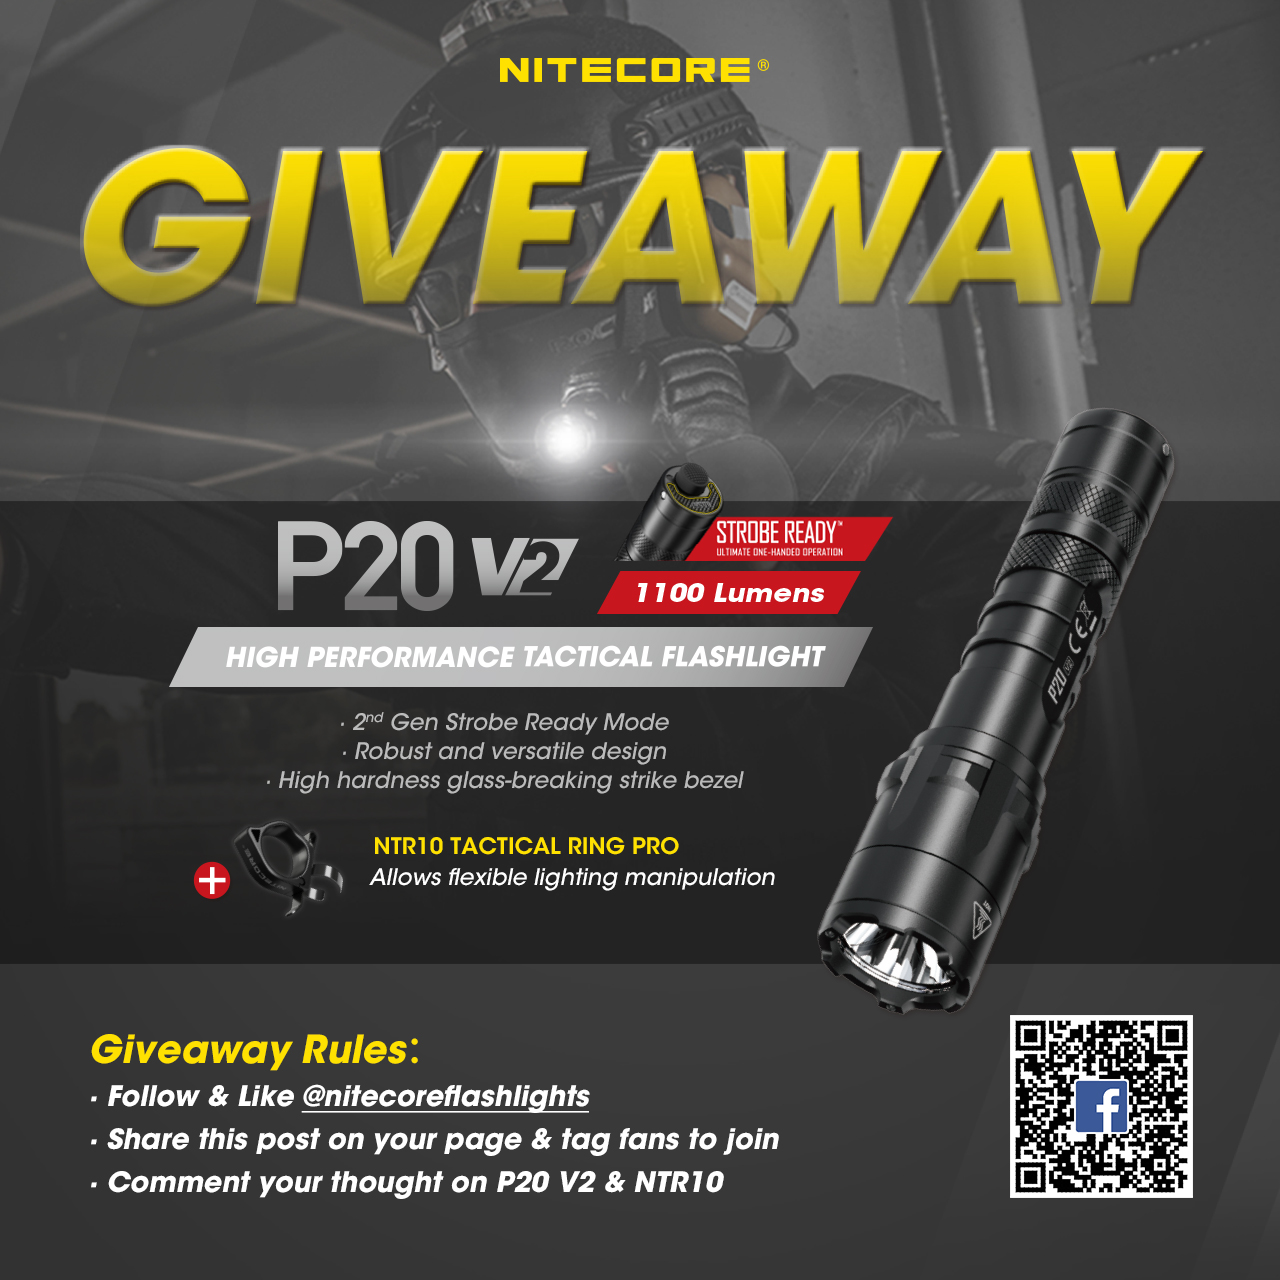 🔥🔥NITECORE GIVEAWAY🔥🔥 Let's join our giveaway and you will have a chance to win P20 V2 & NTR10 back home‼️